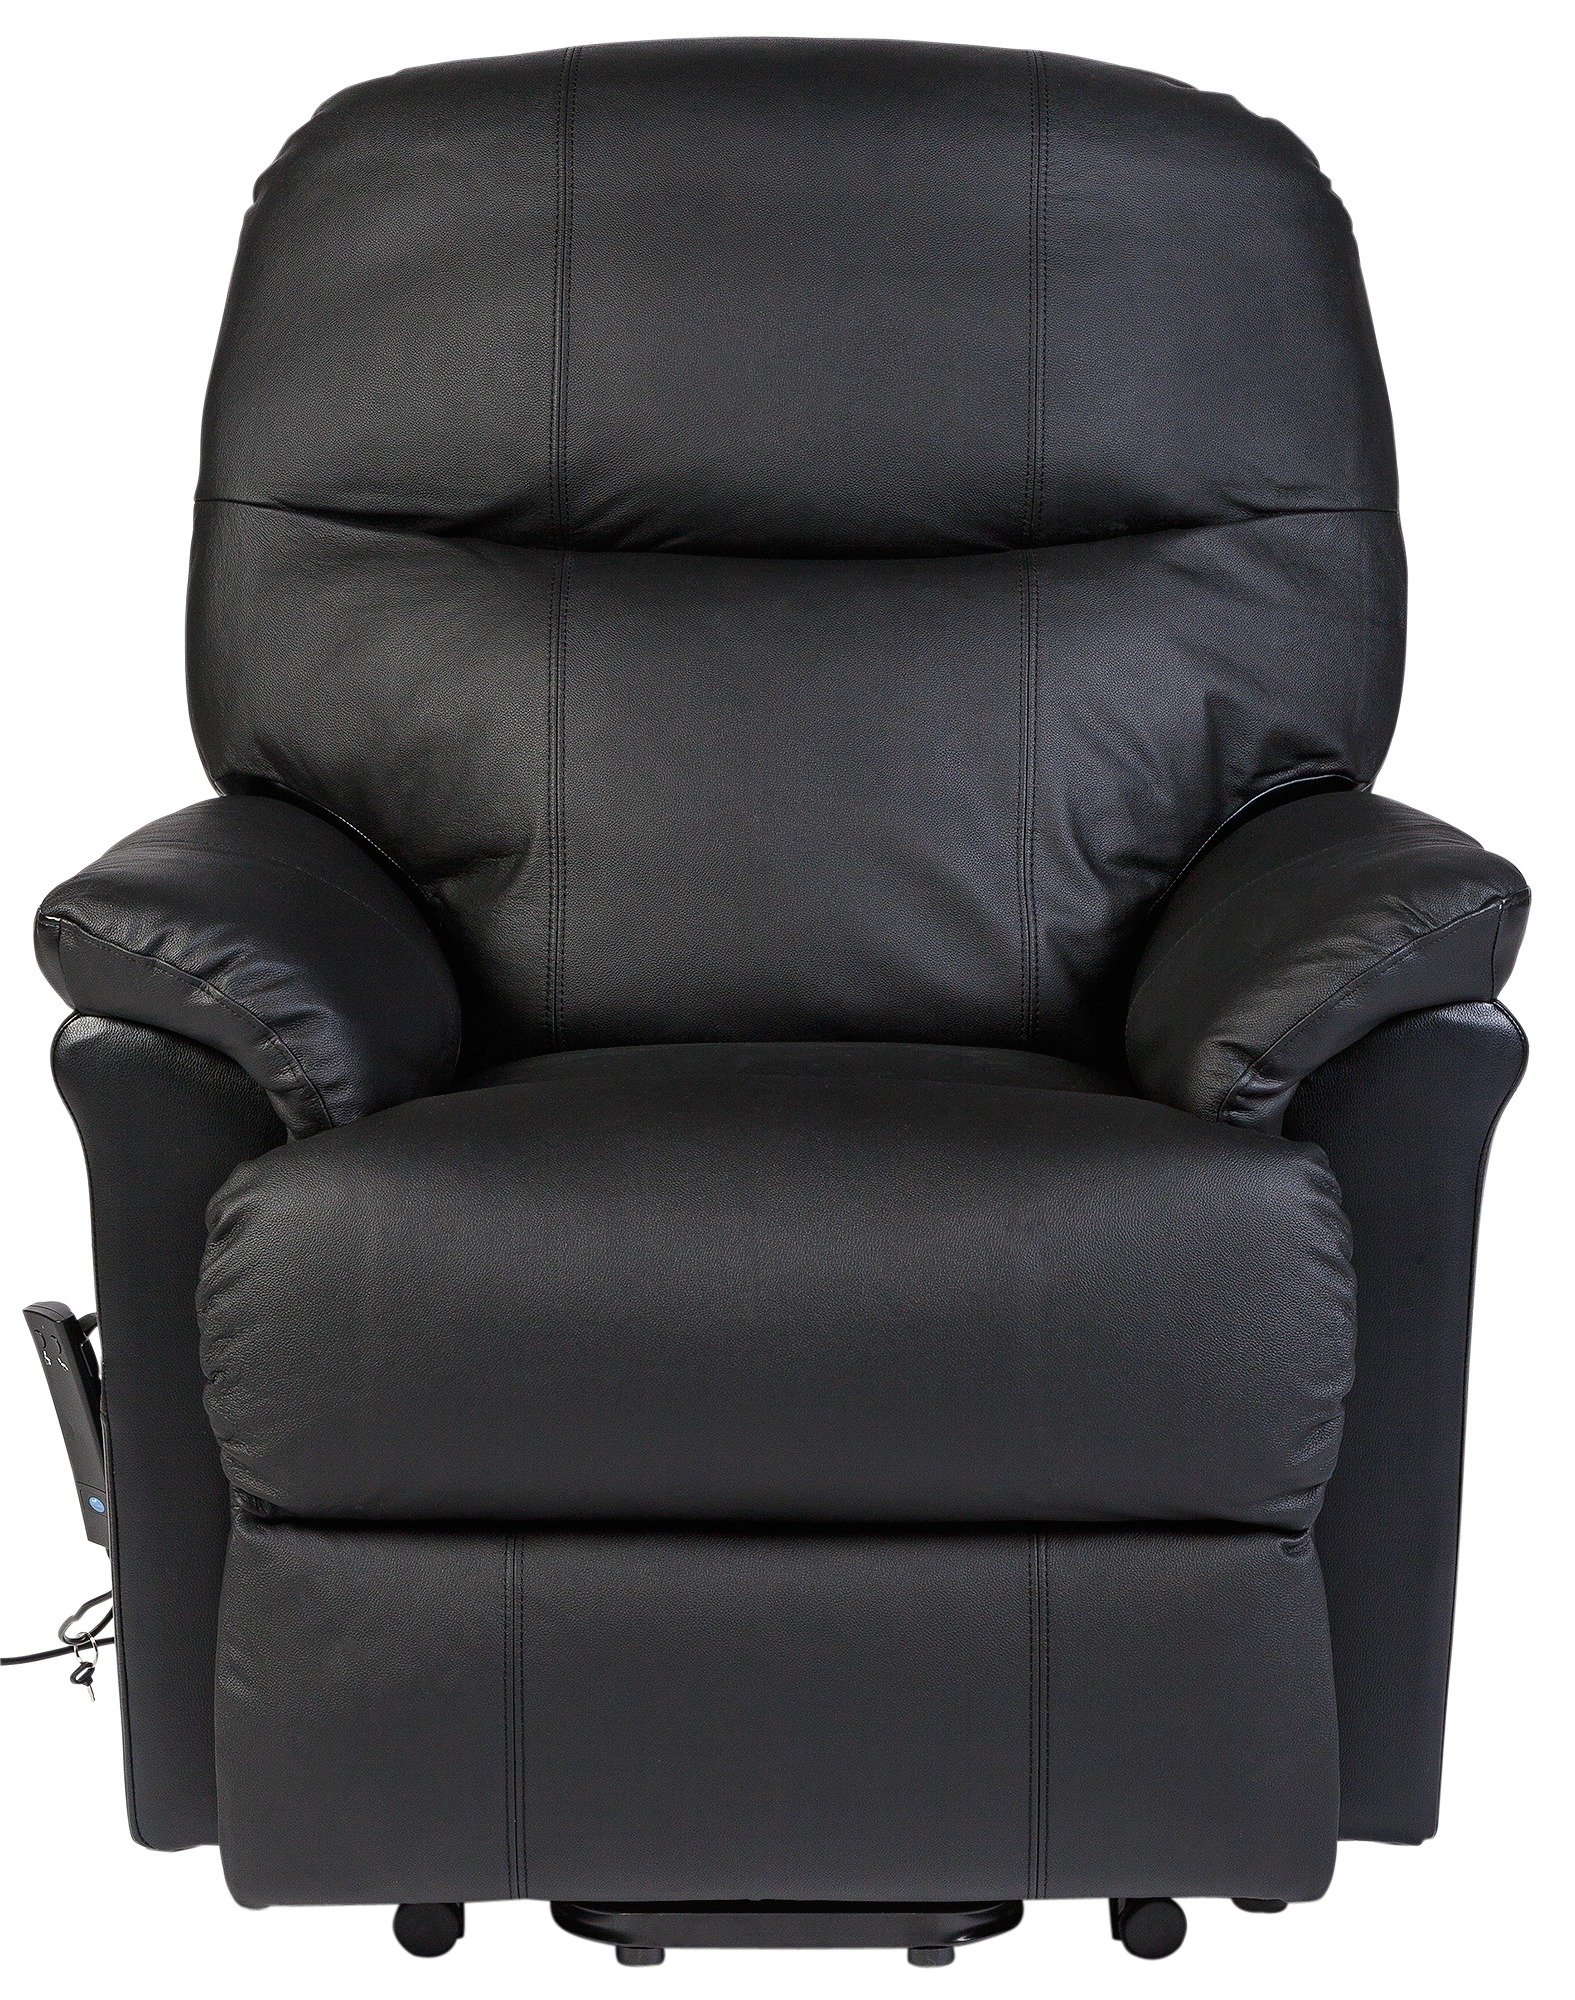 motor chairs for sale chair king hours on lars riser recliner leather w single